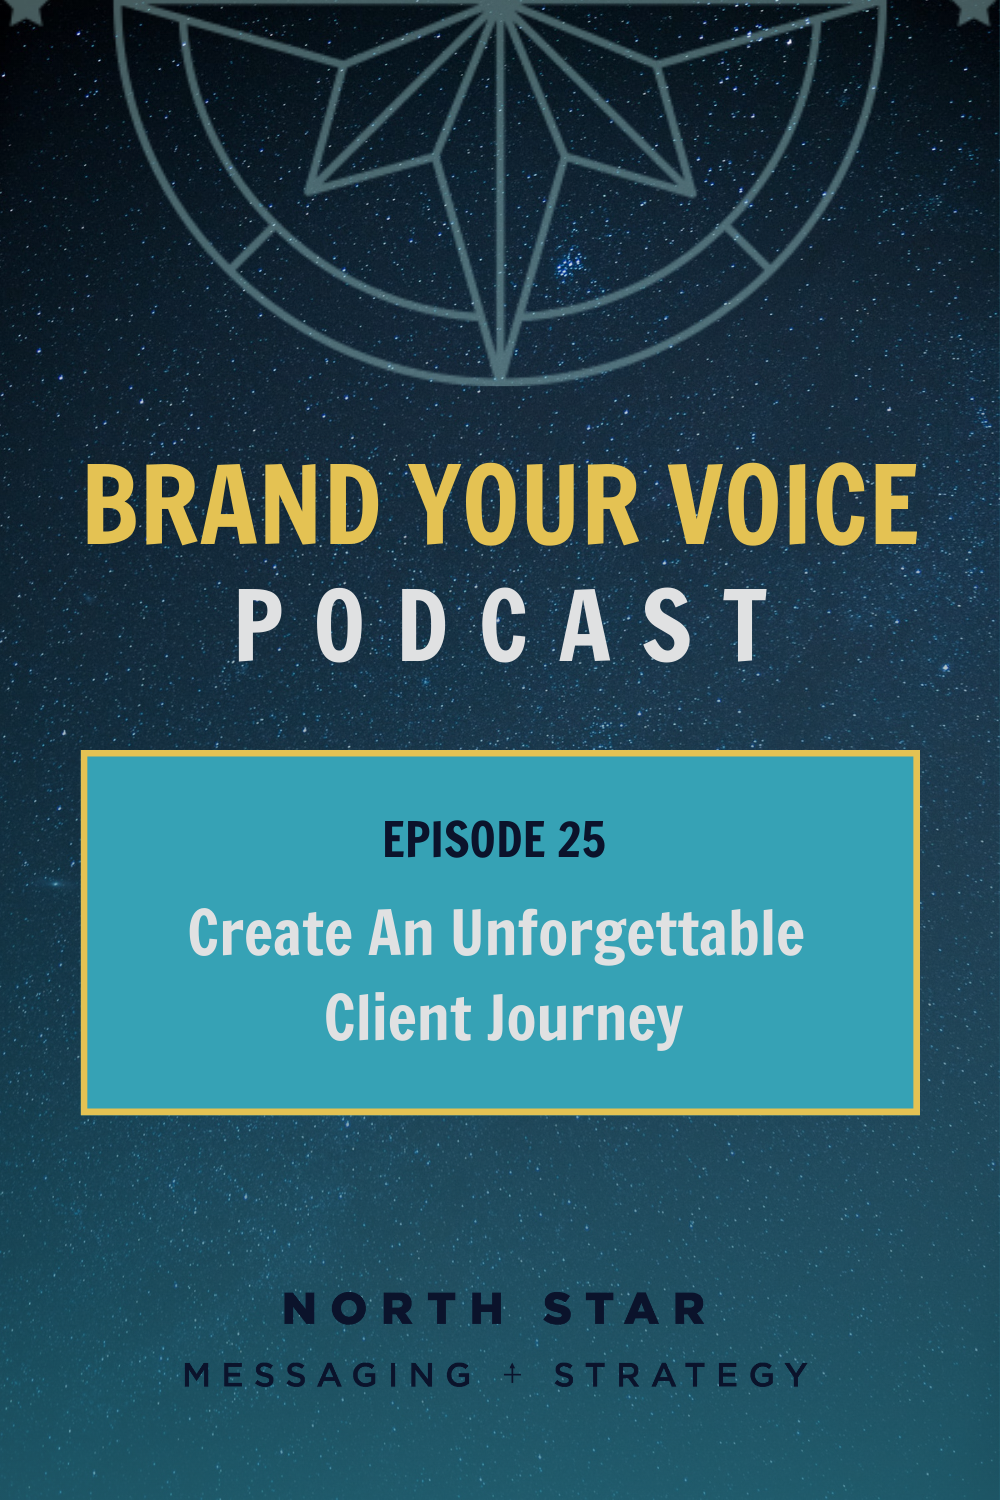 EPISODE 25: Create An Unforgettable Client Journey